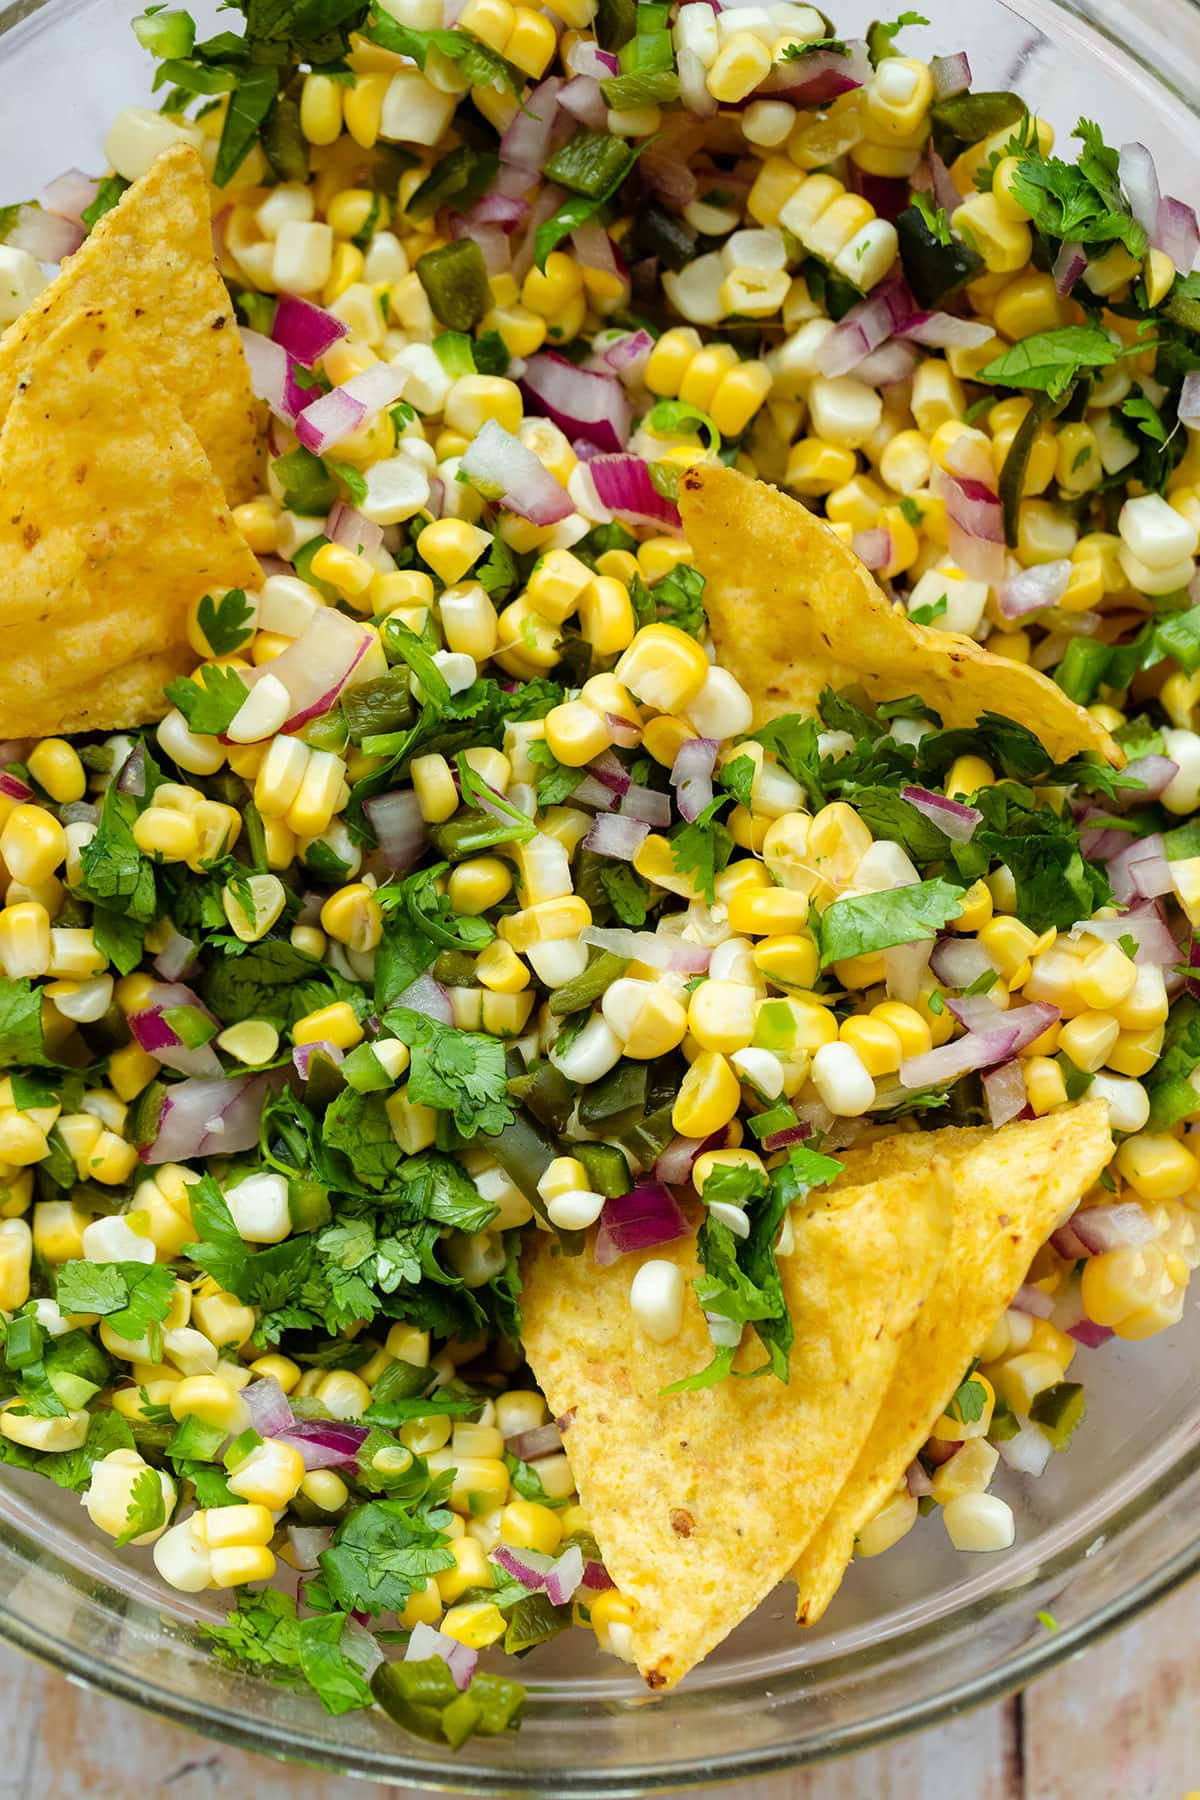 A close up of a glass bowl with Chili Corn salsa on a light wooden backgrond.